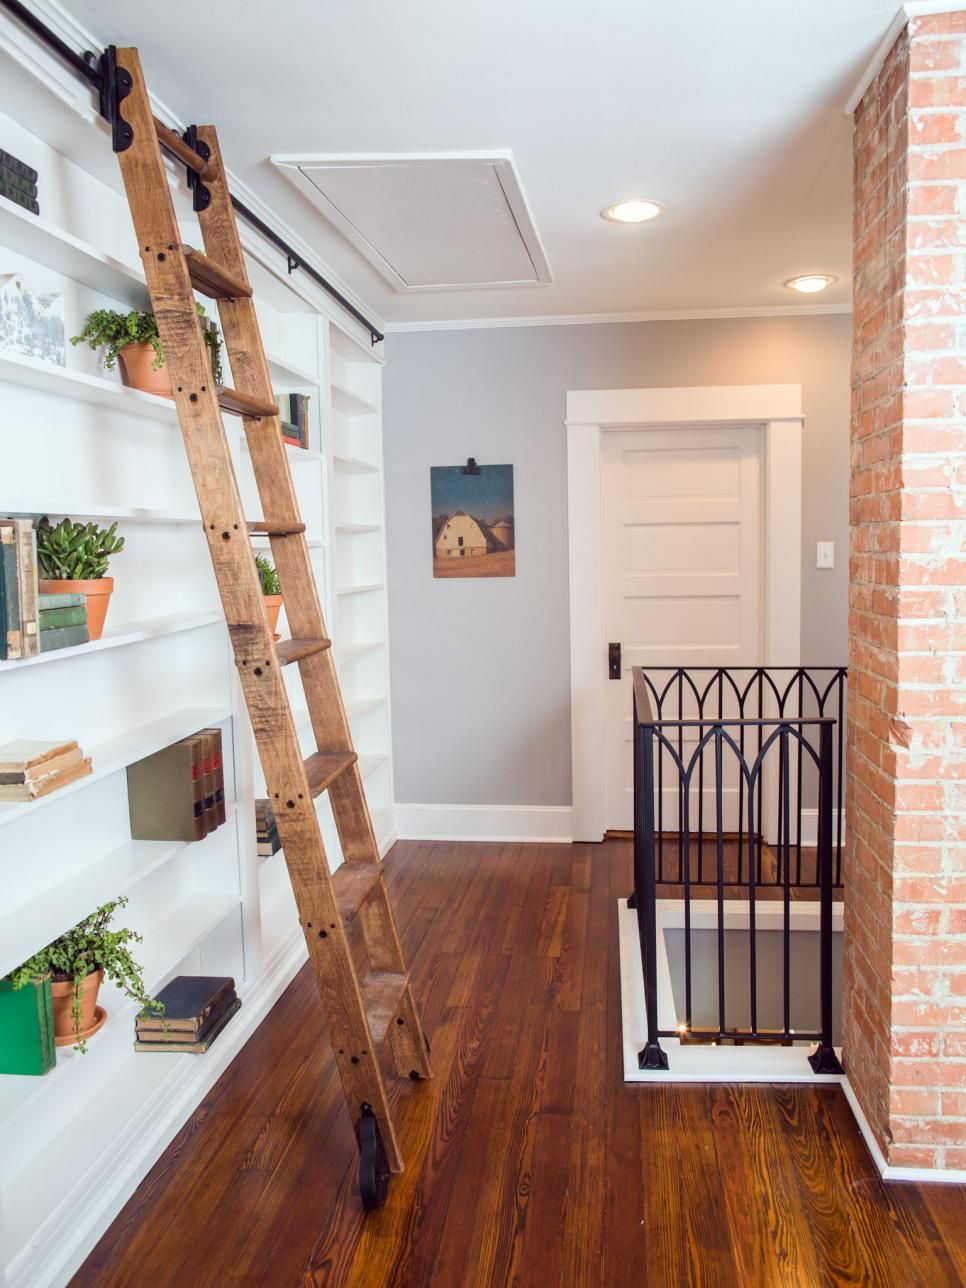 Fixer upper texassized house small town charm joanna gaines